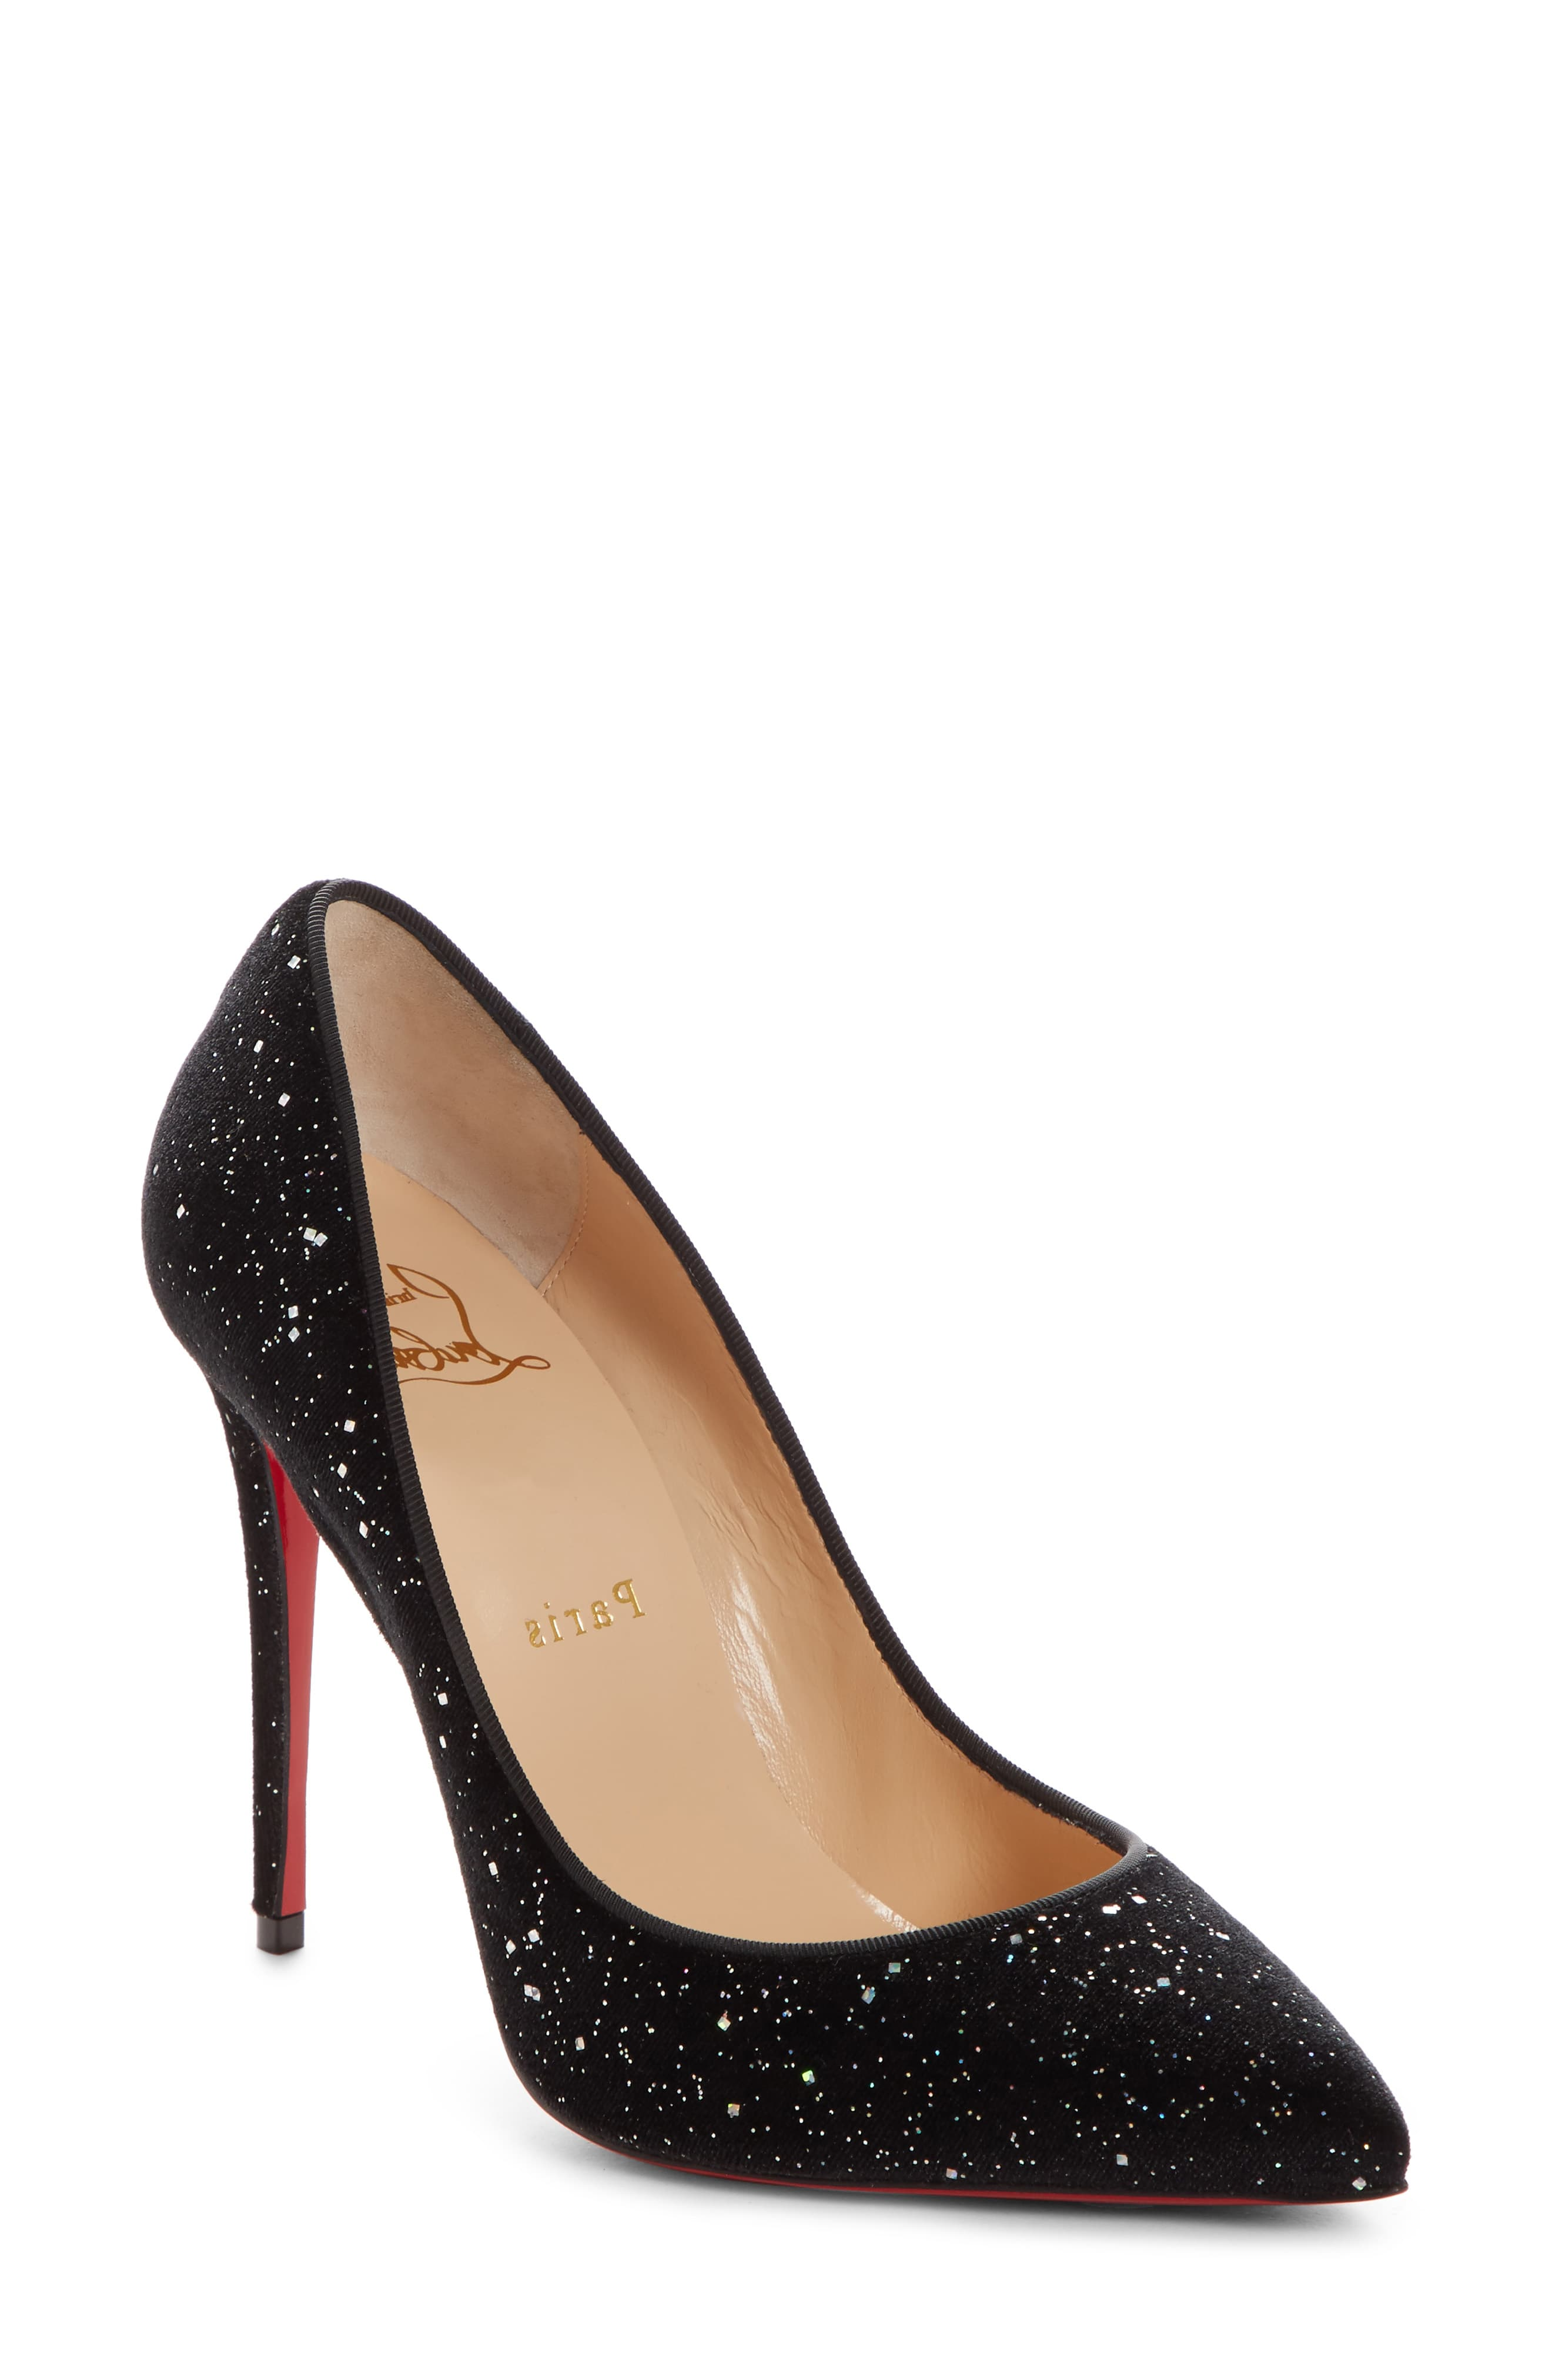 size 40 a503f 43505 Women's Christian Louboutin Pigalle Follies Pointy Toe Pump ...